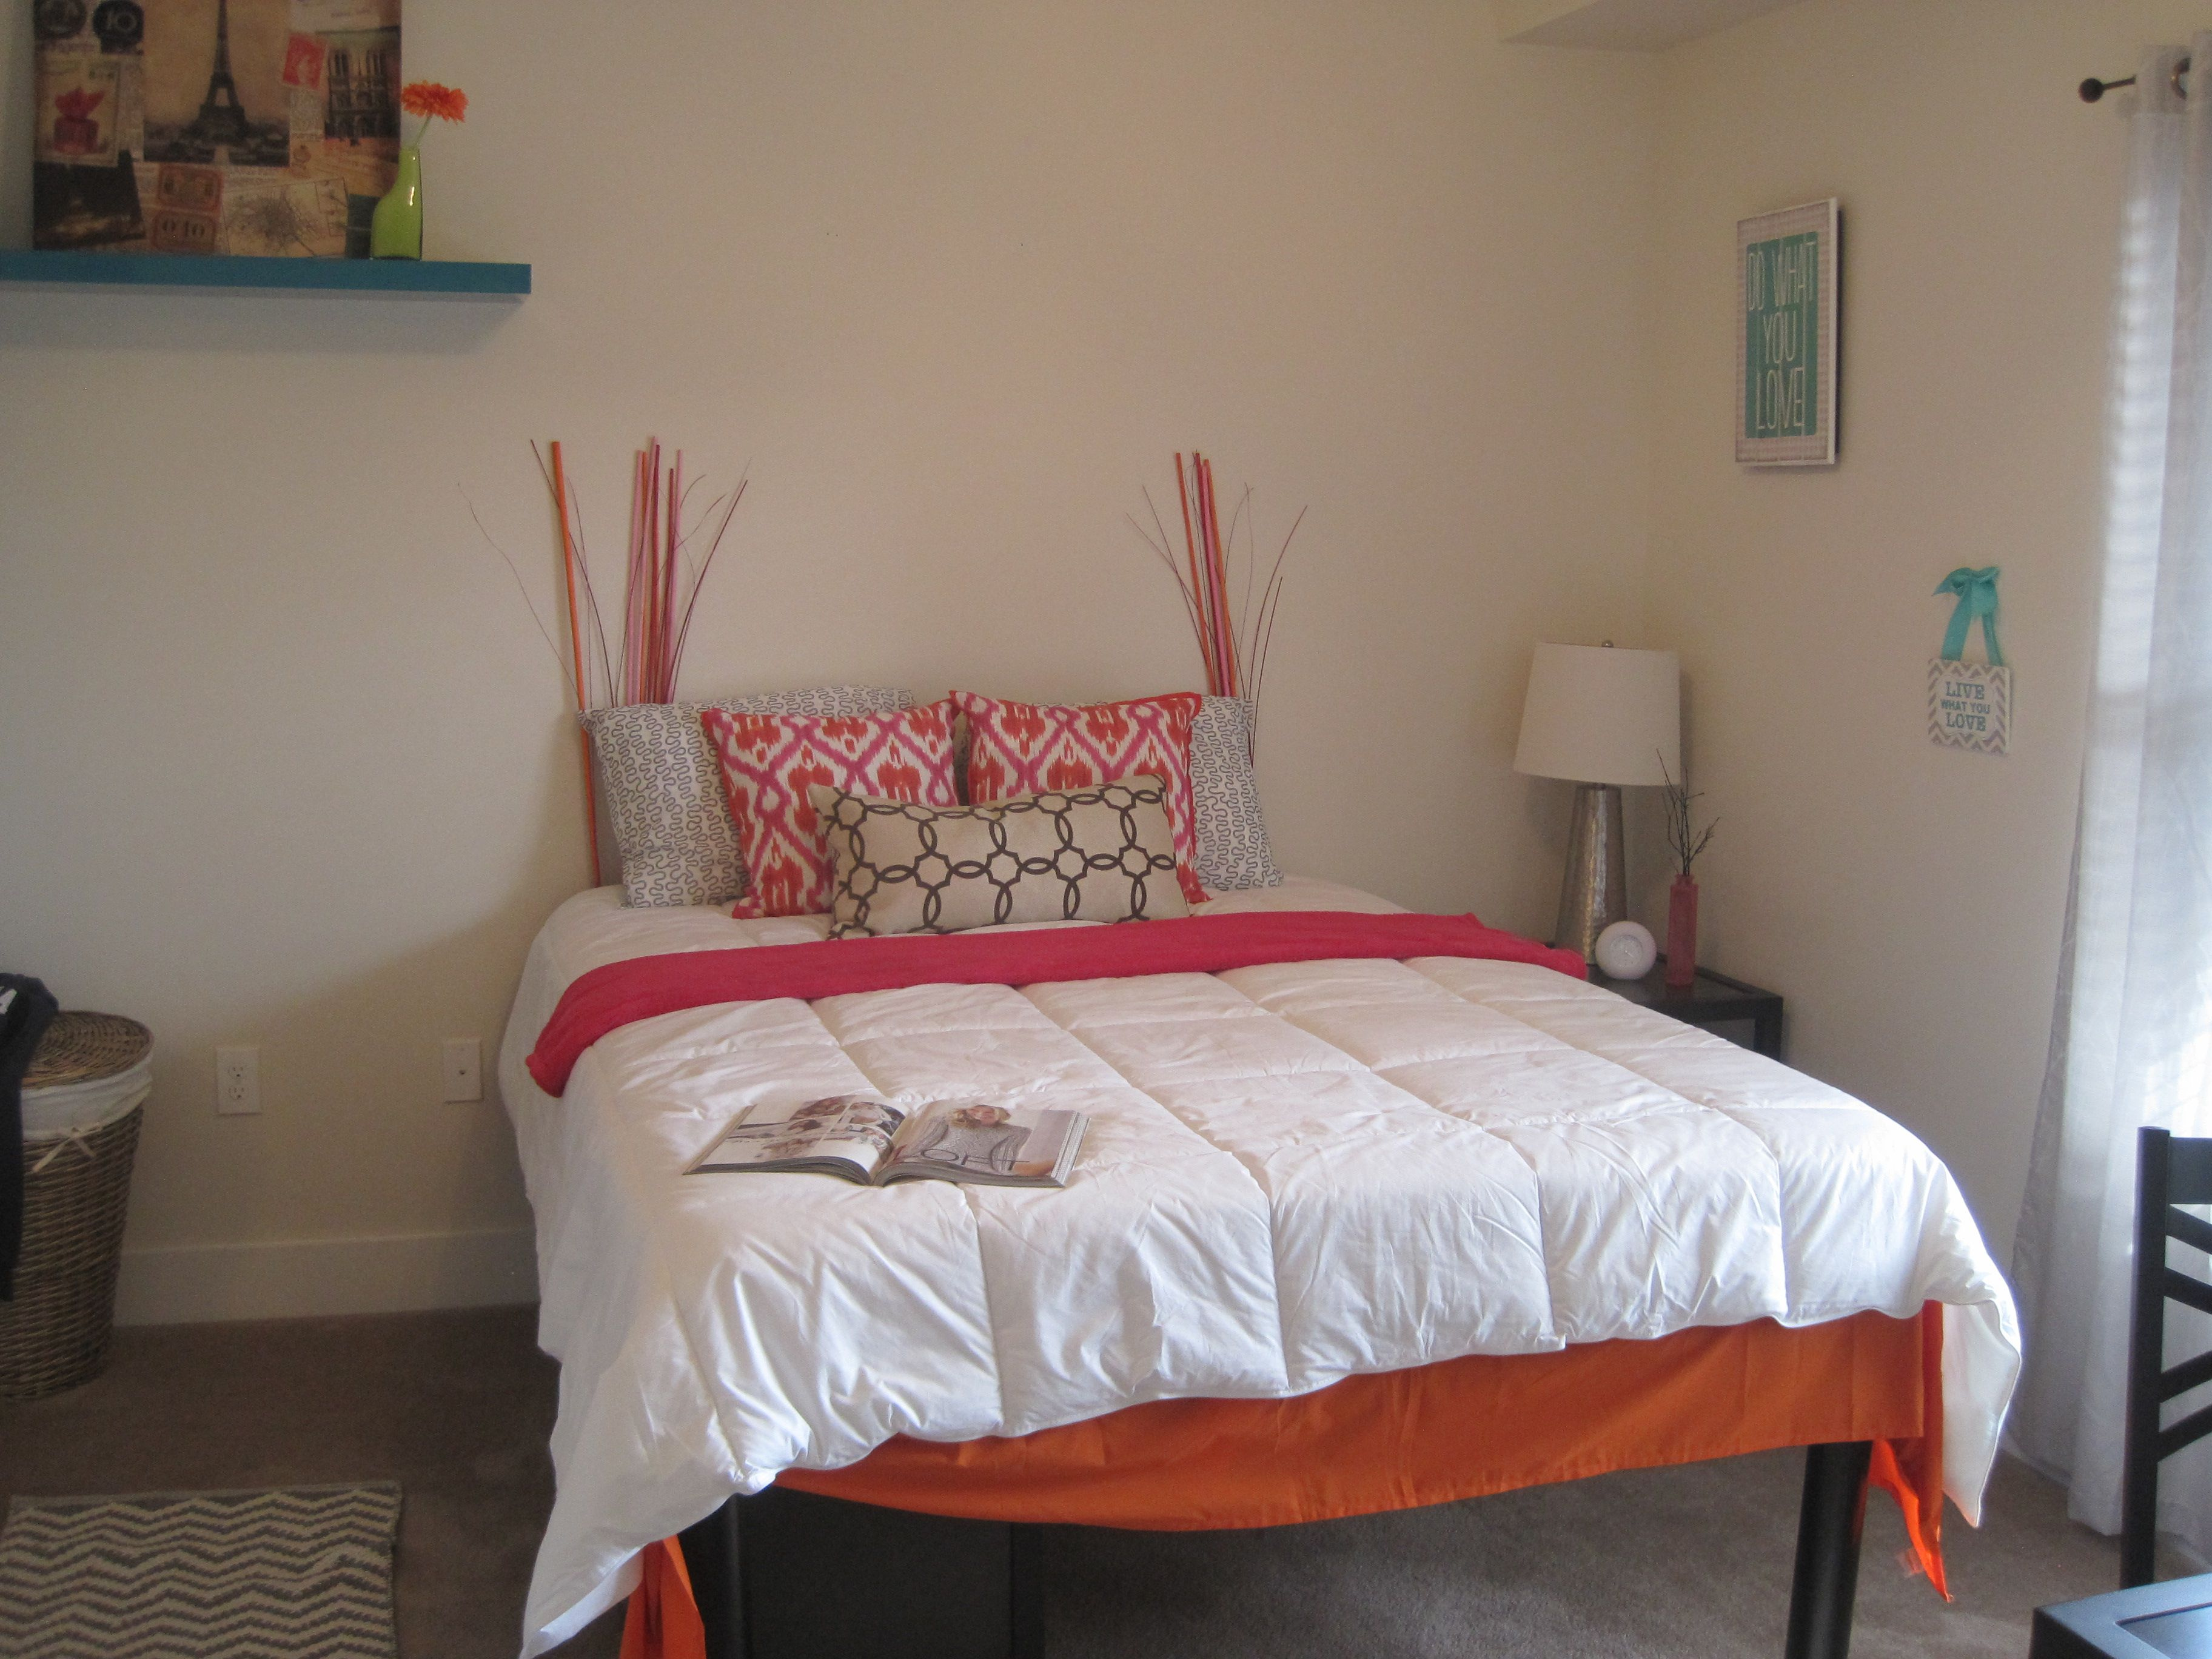 Bedroom A Furnished 9 ft. ceilings, queen sized bed, huge